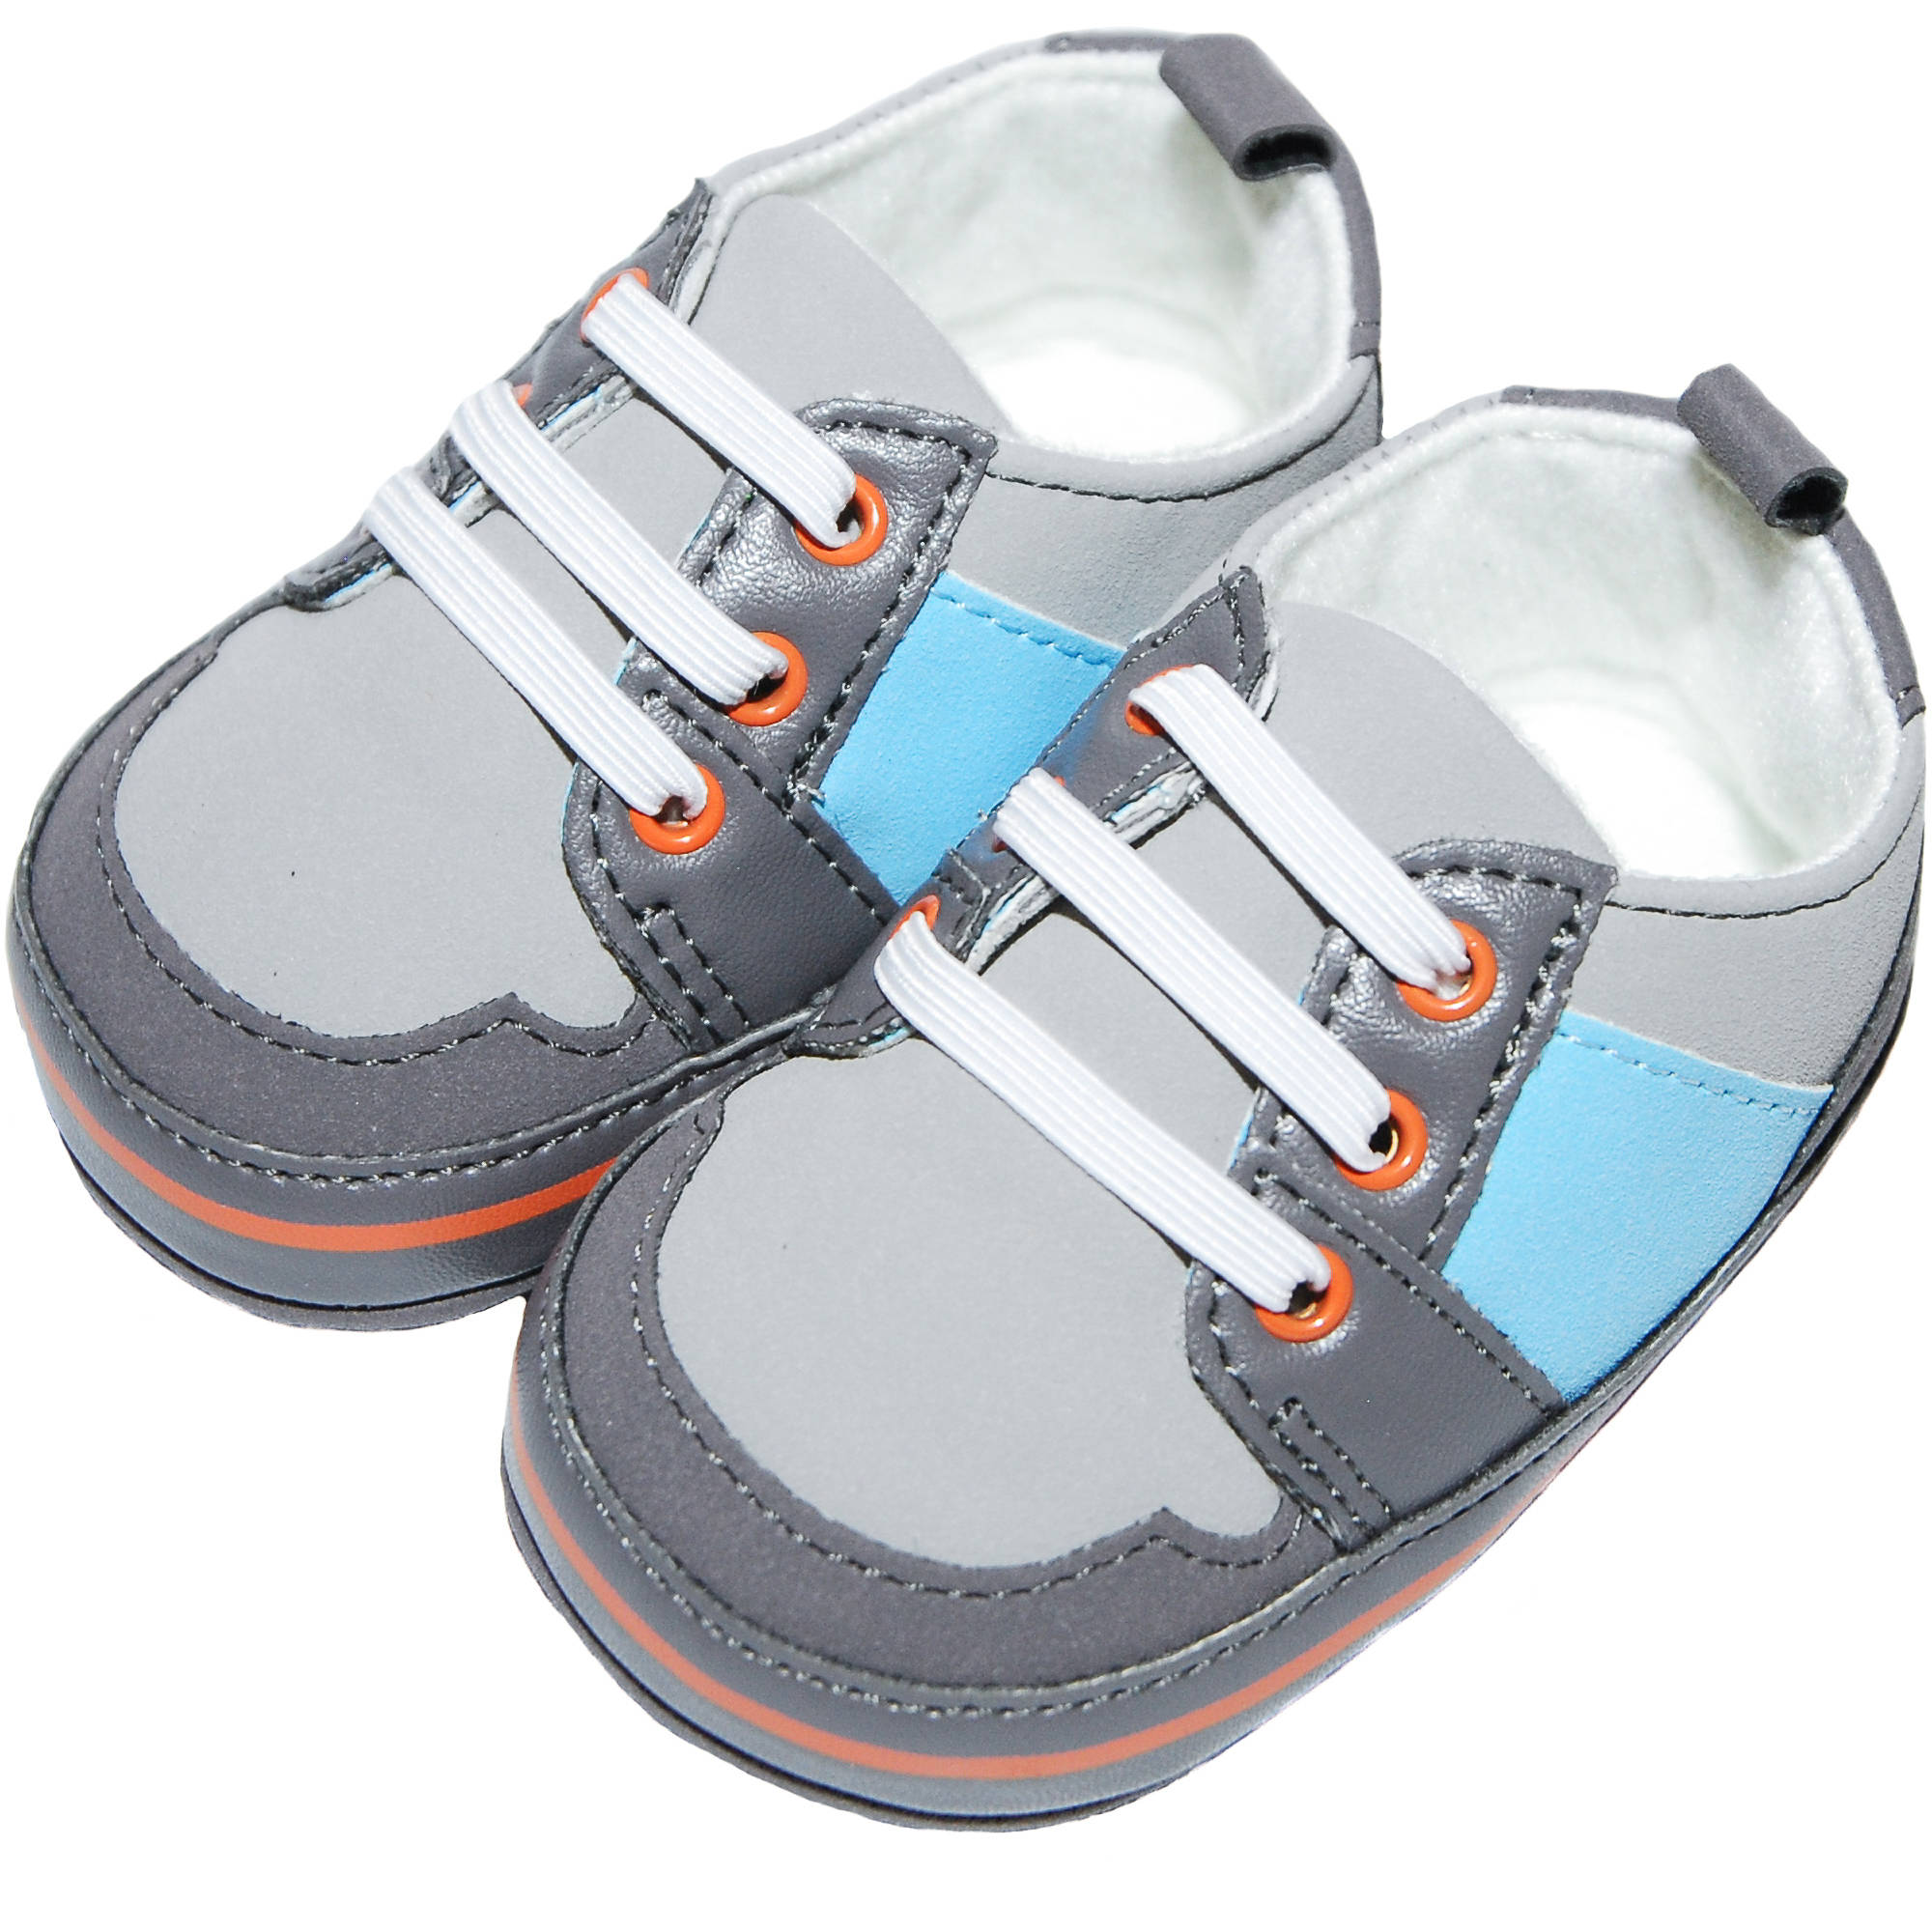 Silly Souls Newborn Baby King Blue Leather Shoes Walmart